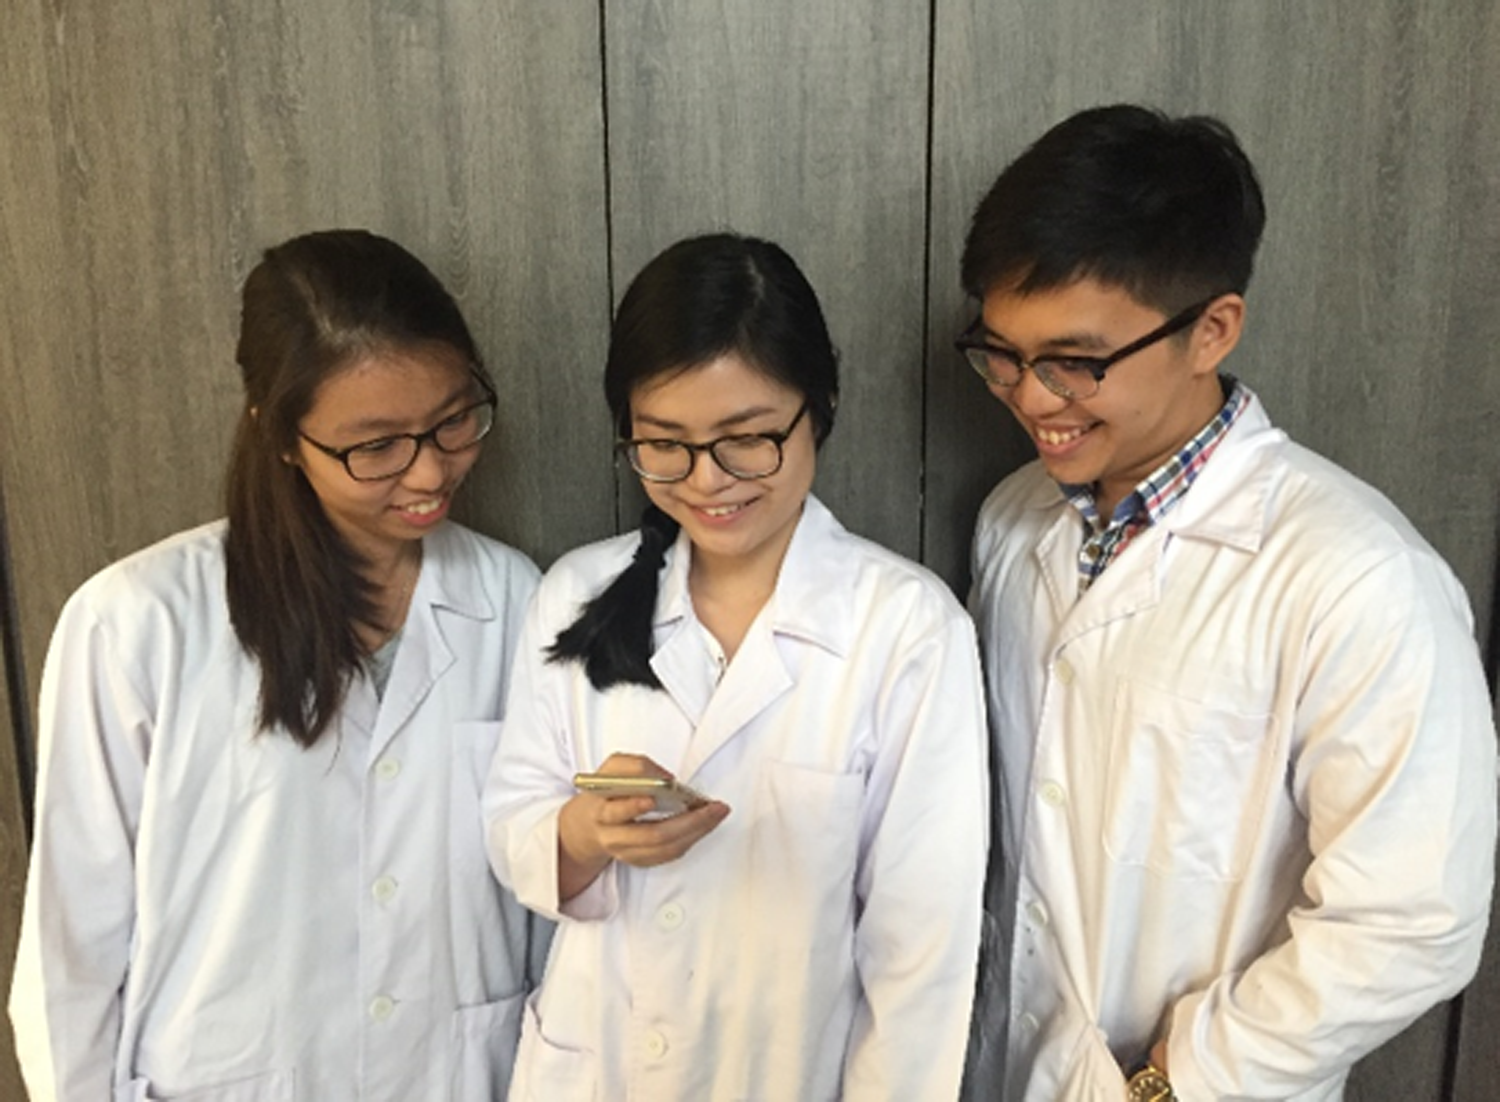 How to use Snapchat in the laboratory for better student engagement